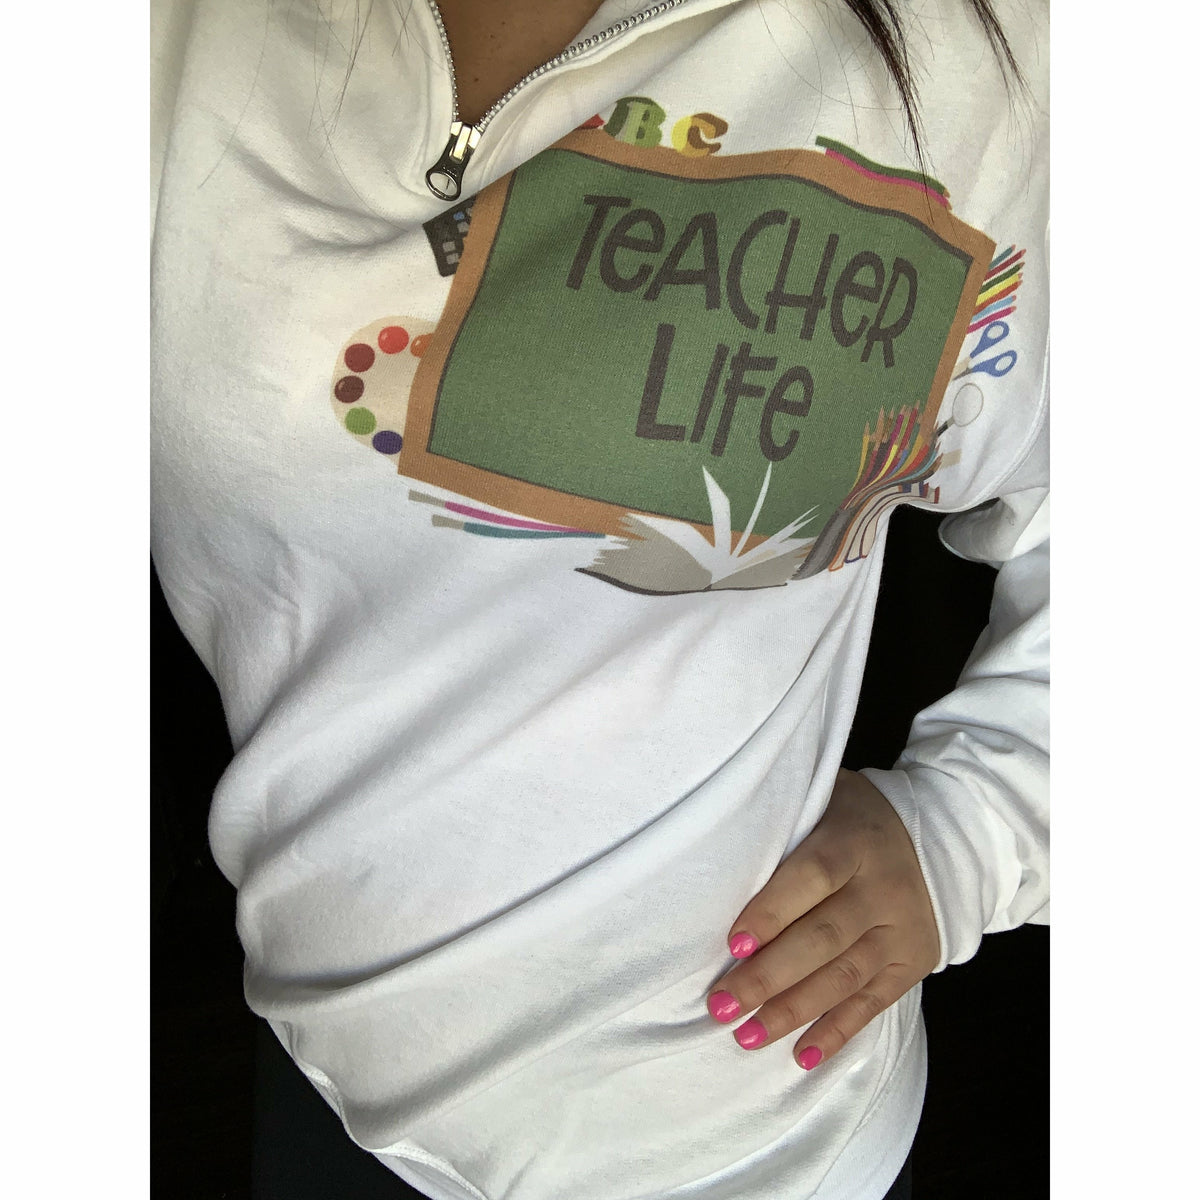 Teacher Life Pull-Over ( can customize)